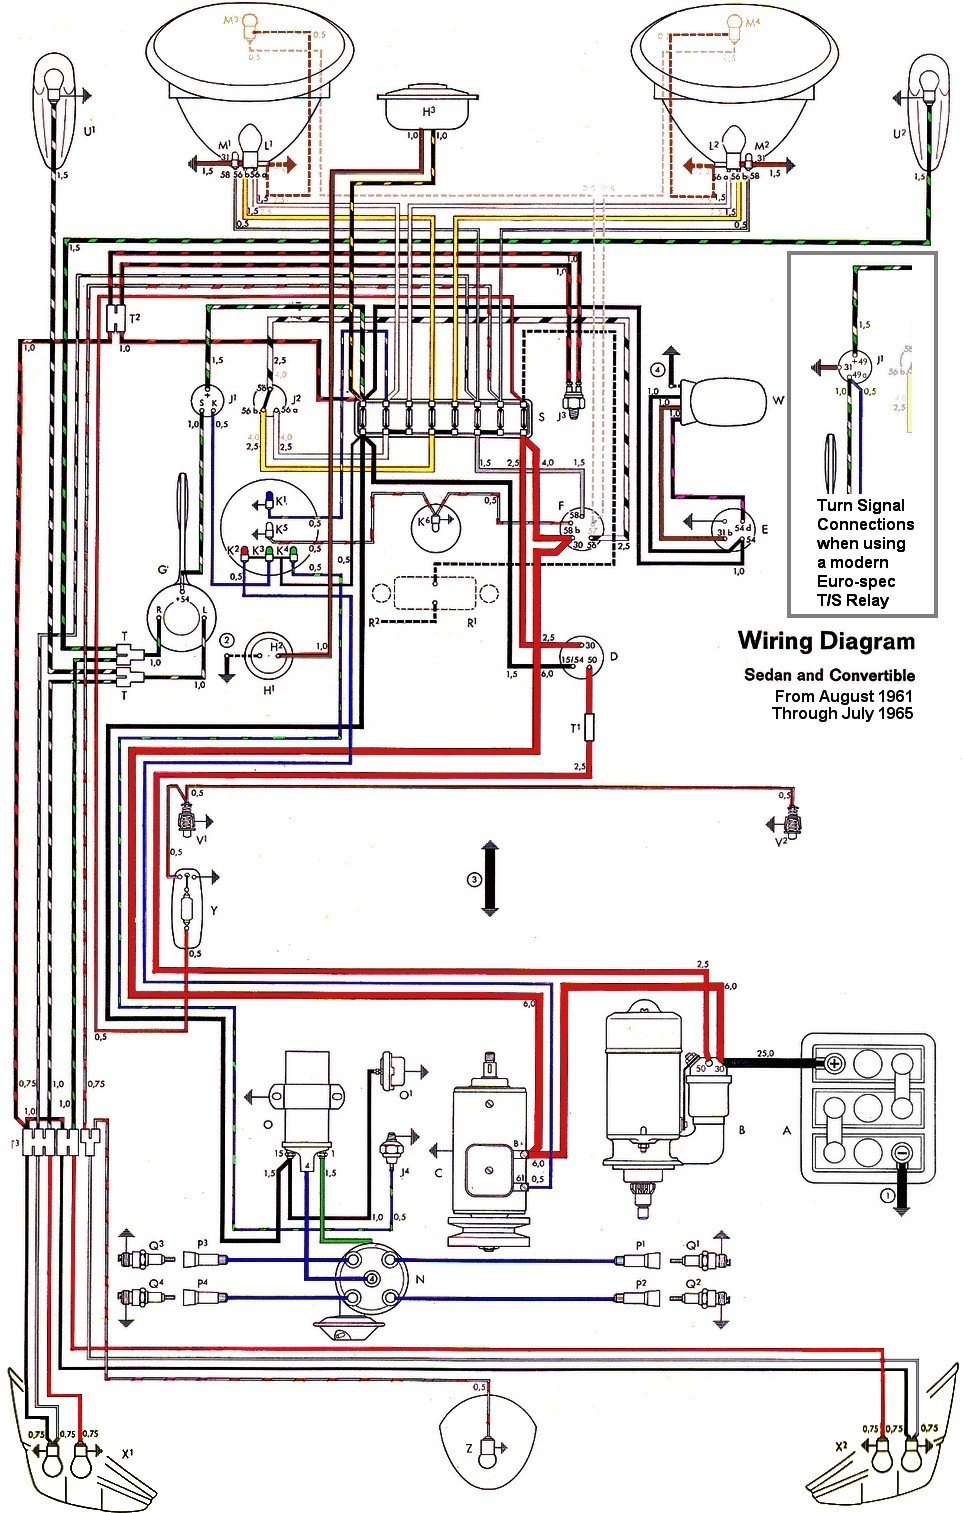 bug_62 65withinset vw wiring harness diagram cj7 wiring harness diagram \u2022 wiring 2002 vw beetle wiring diagram at soozxer.org